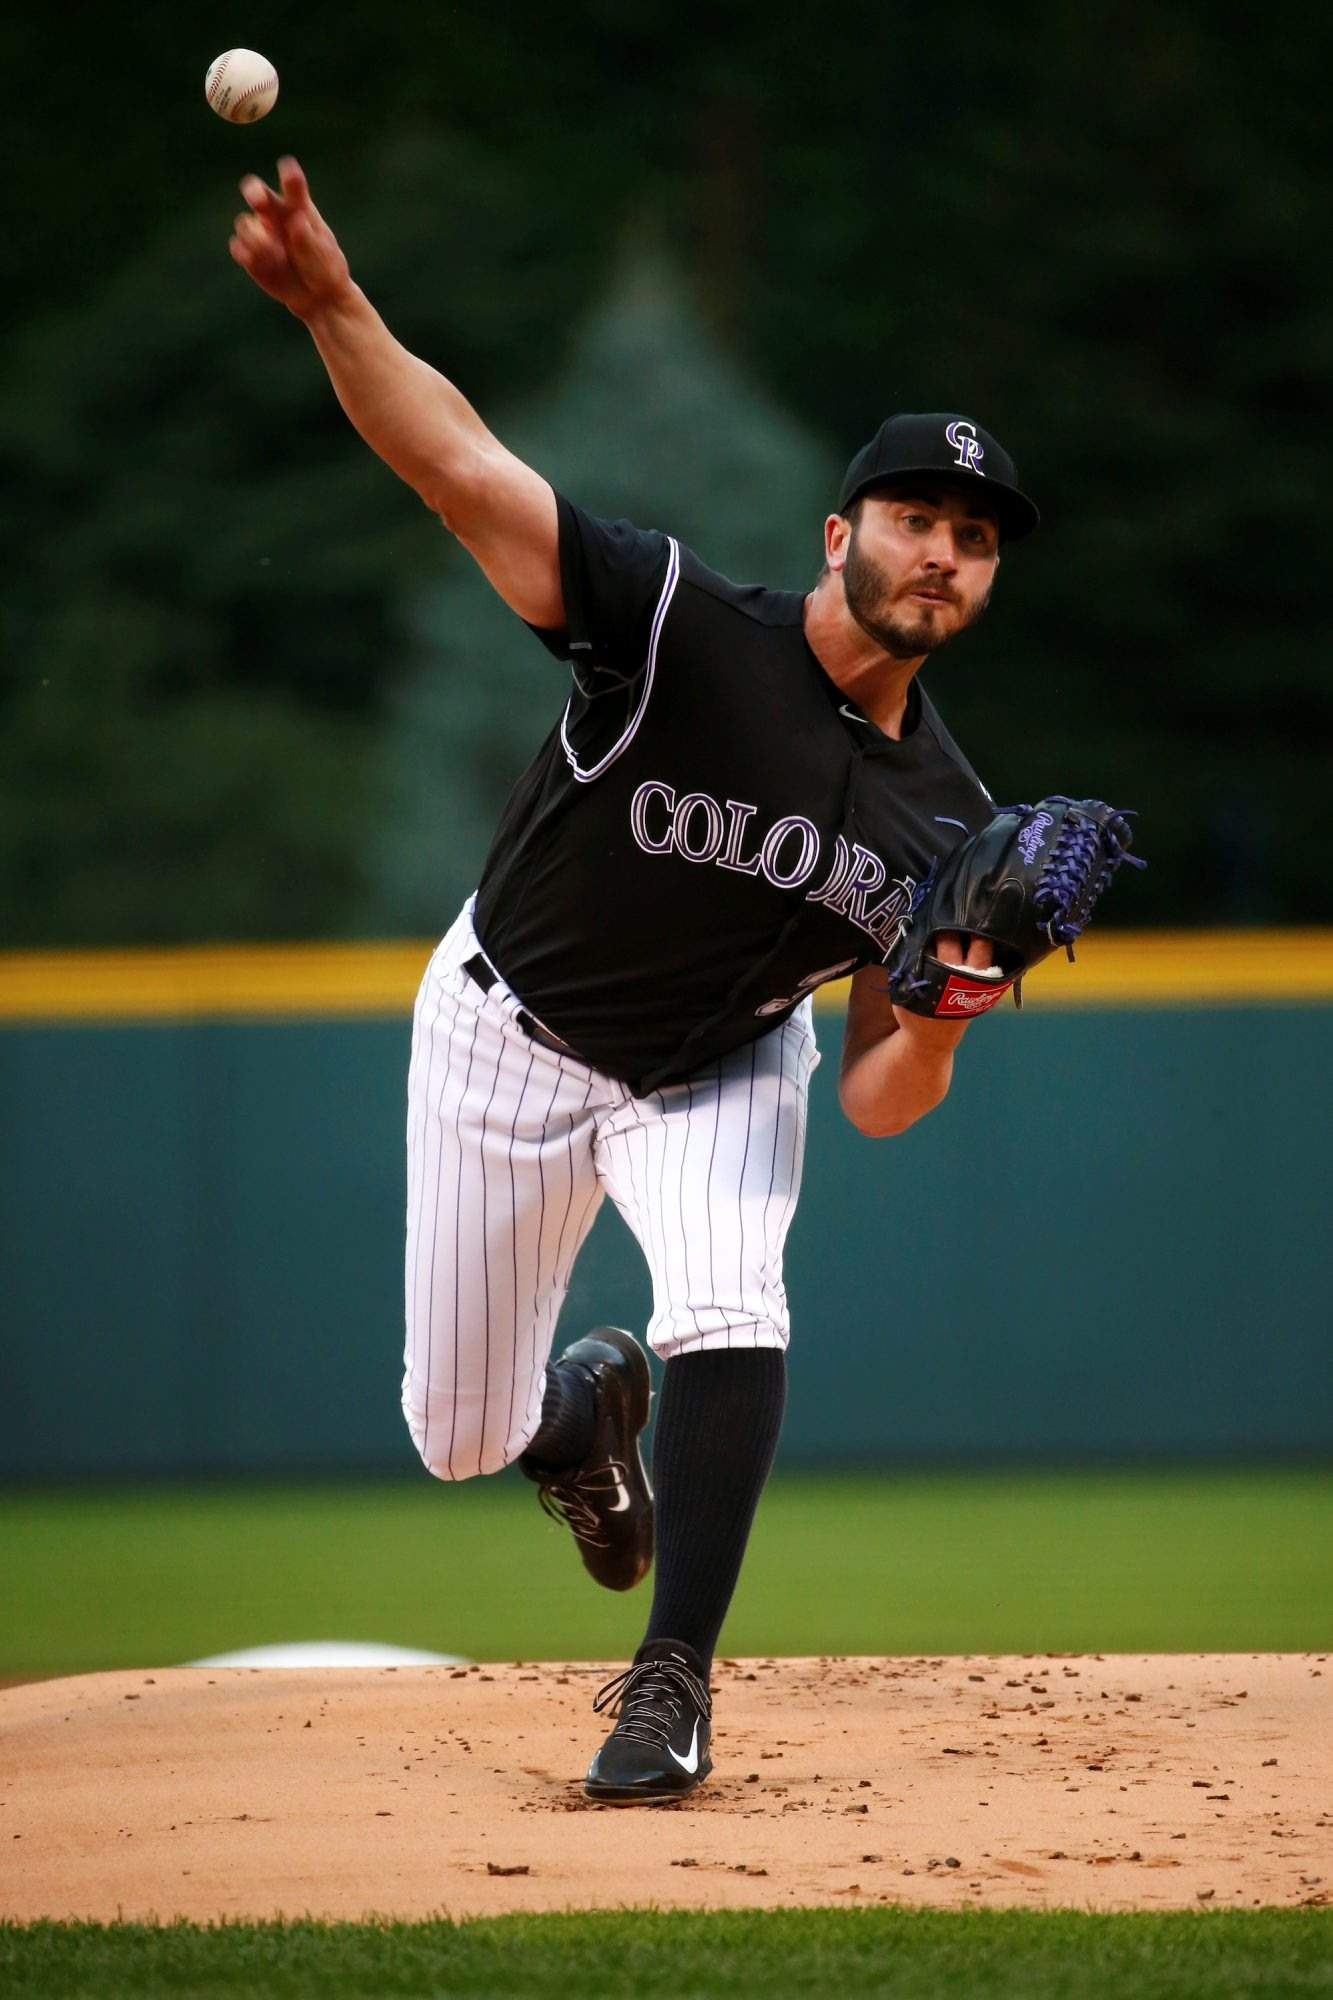 3bfbdeeffd03d Colorado Rockies starting pitcher Chad Bettis throws to the plate during  the first inning of Monday s game against the Atlanta Braves in Denver.